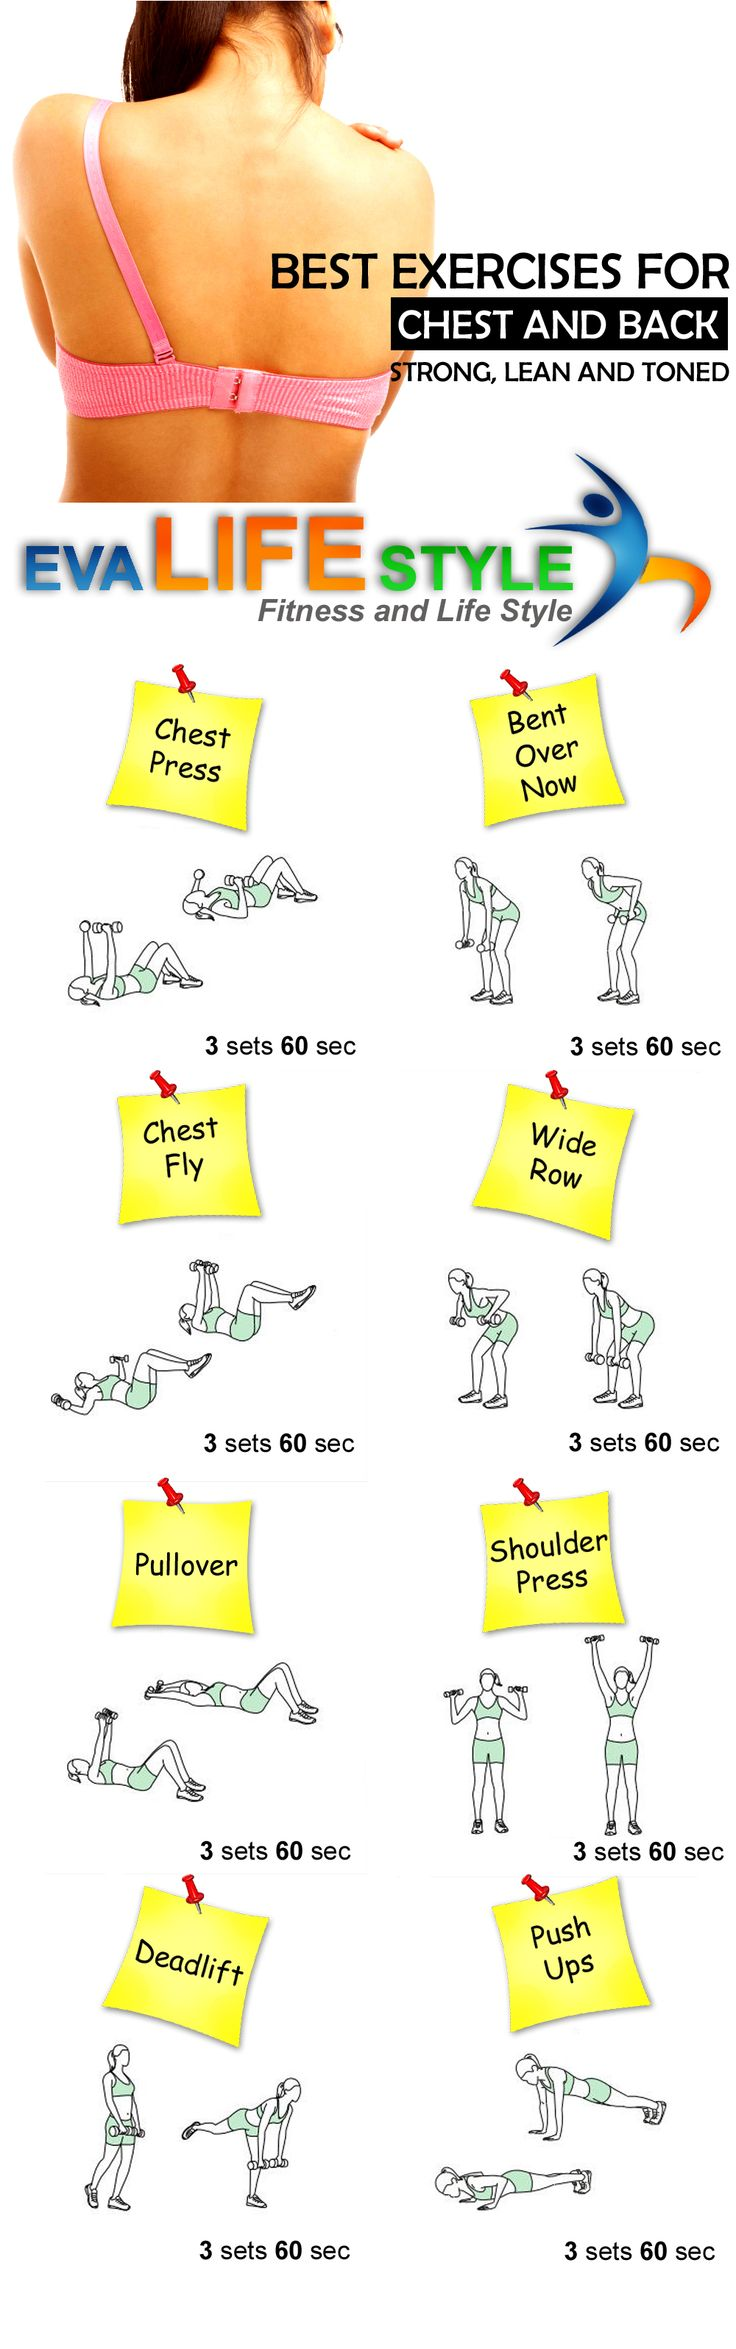 Best Exercises For Chest And Back